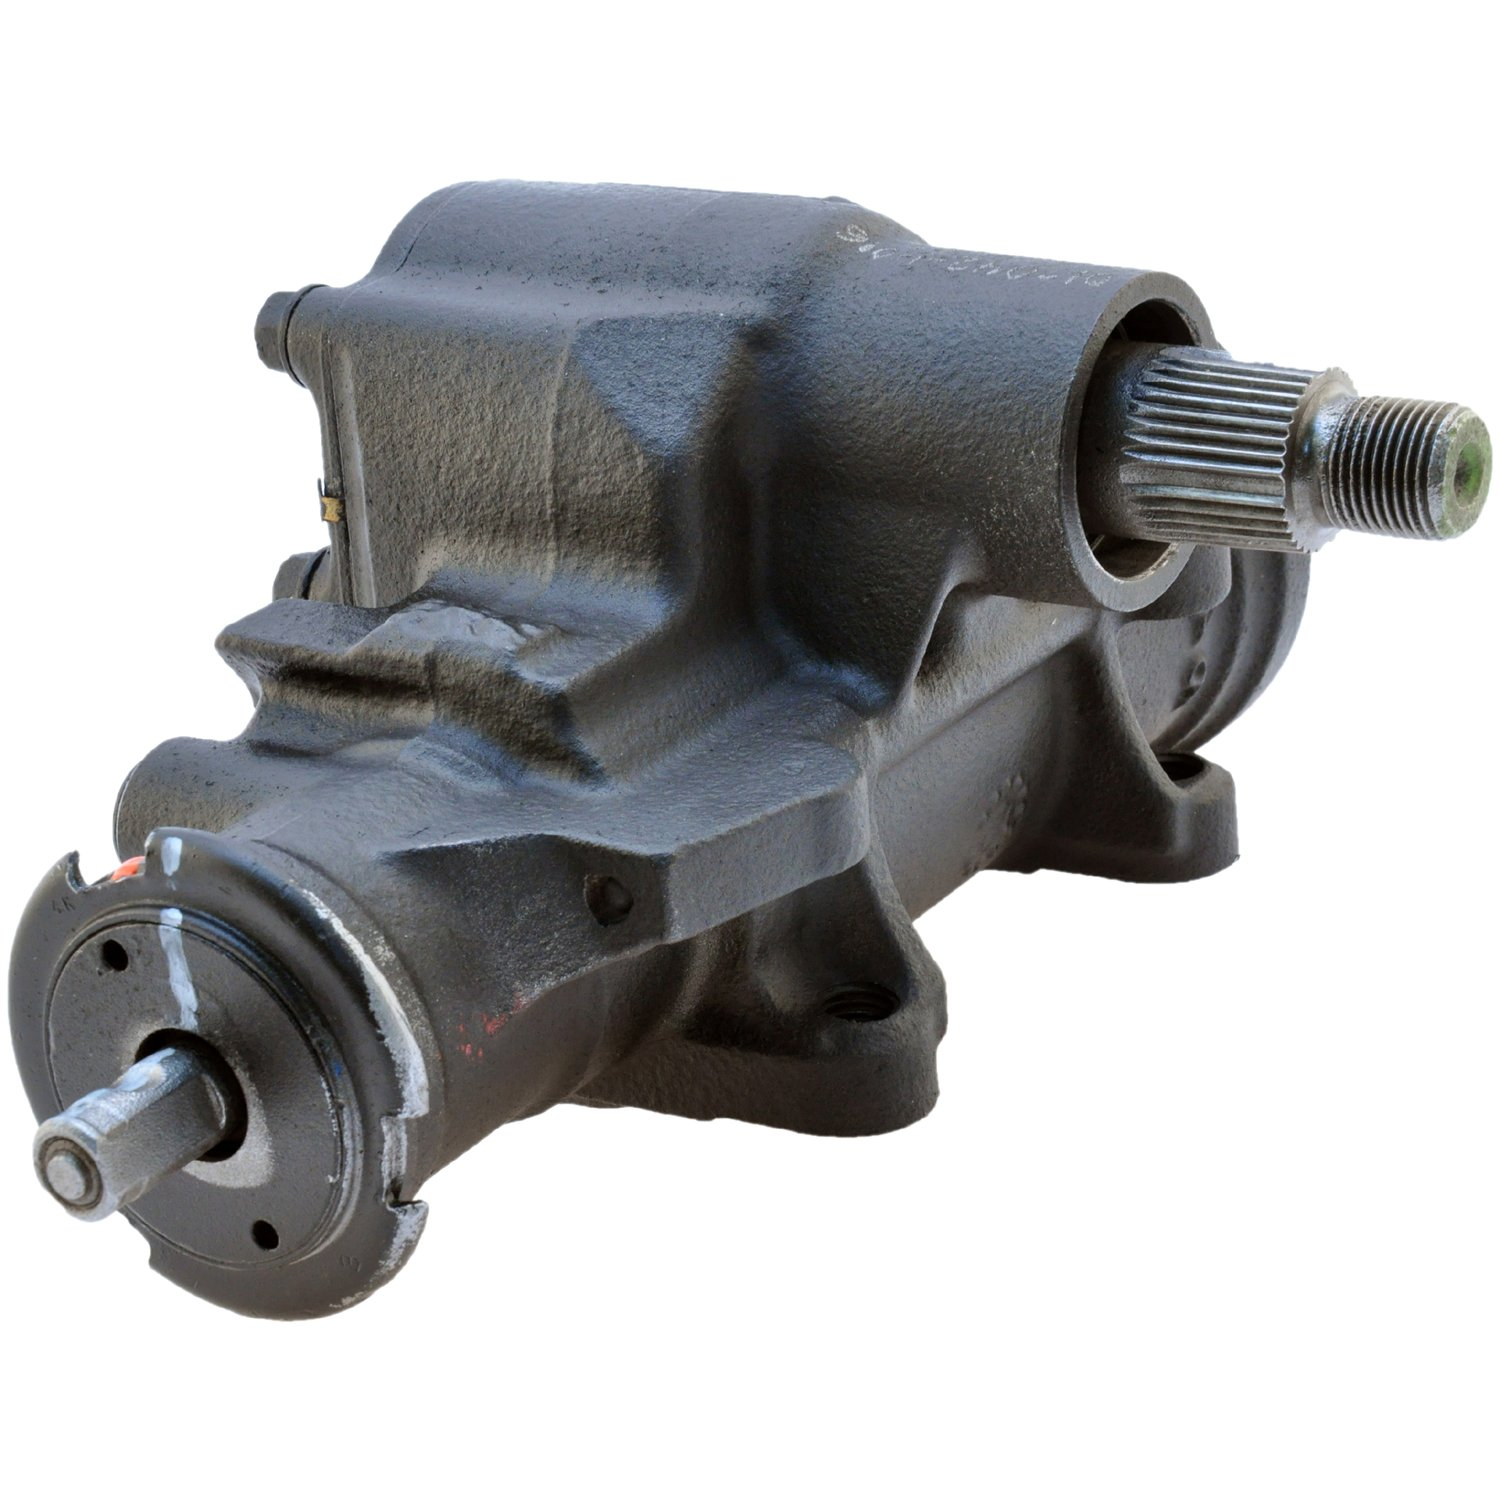 Remanufactured ACDelco 36G0157 Professional Steering Gear without Pitman Arm